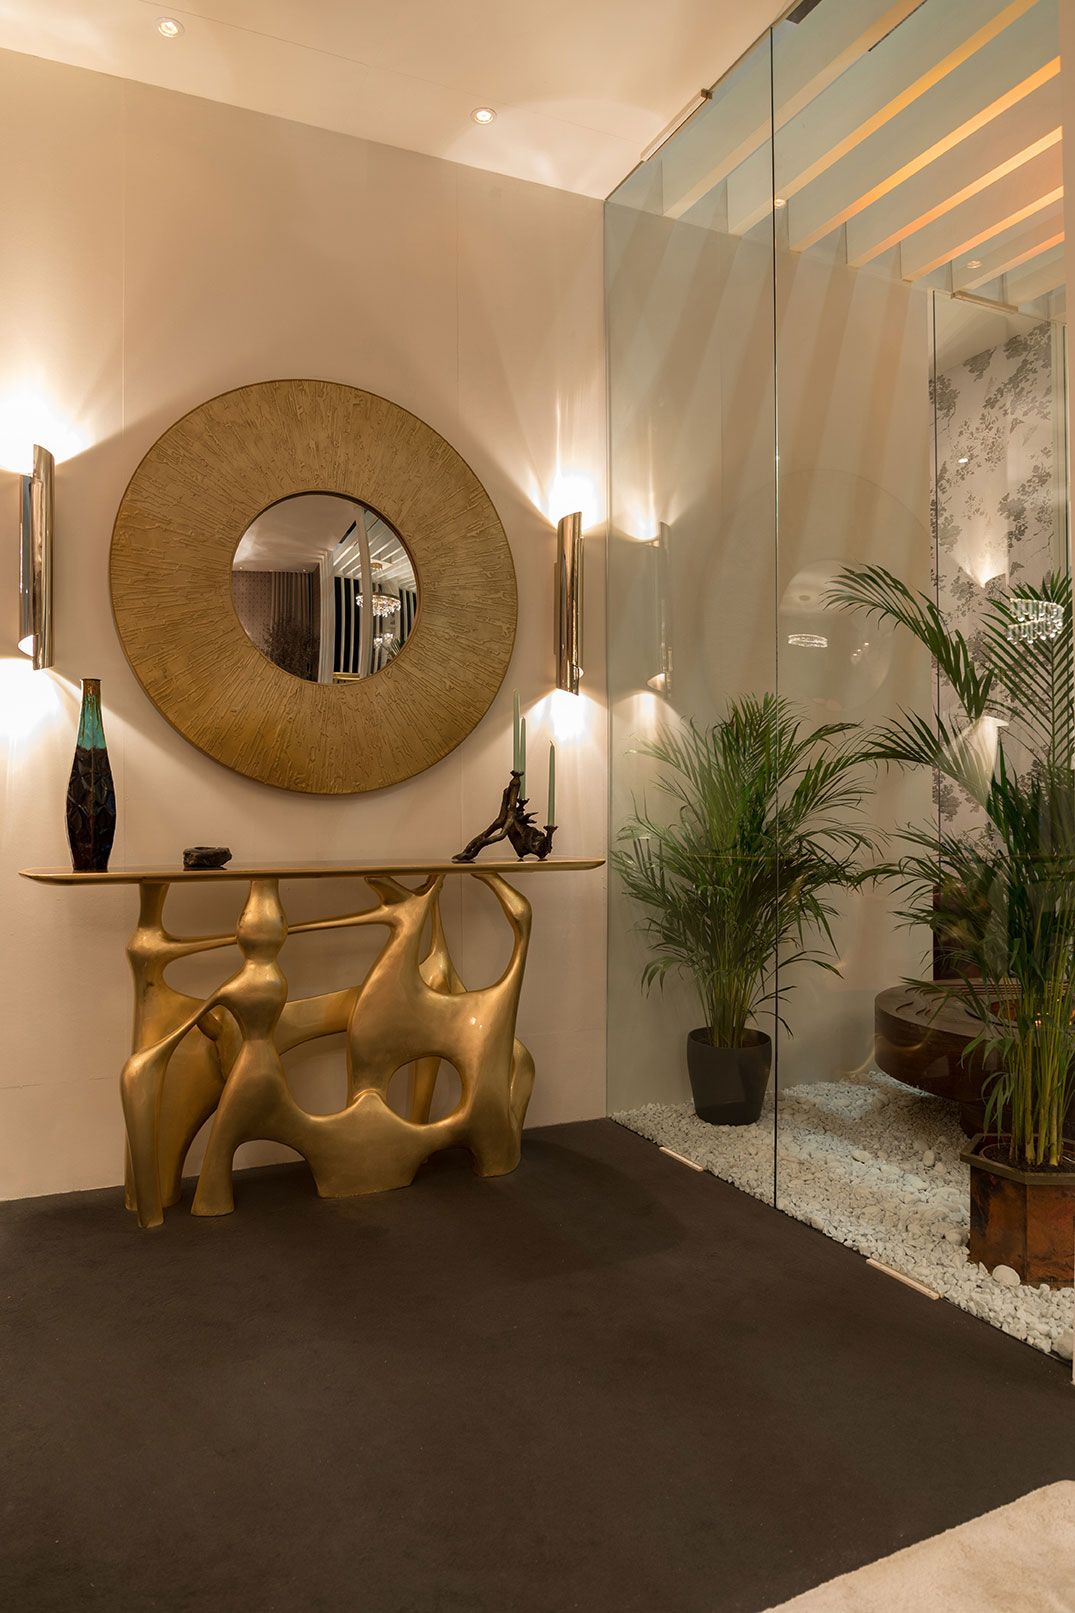 Are You Going To Maison Eu Objet 2019 Maison Valentina Is There Visit Maisonvalentina Net Interior Design Trends Interior Design Projects World Of Interiors